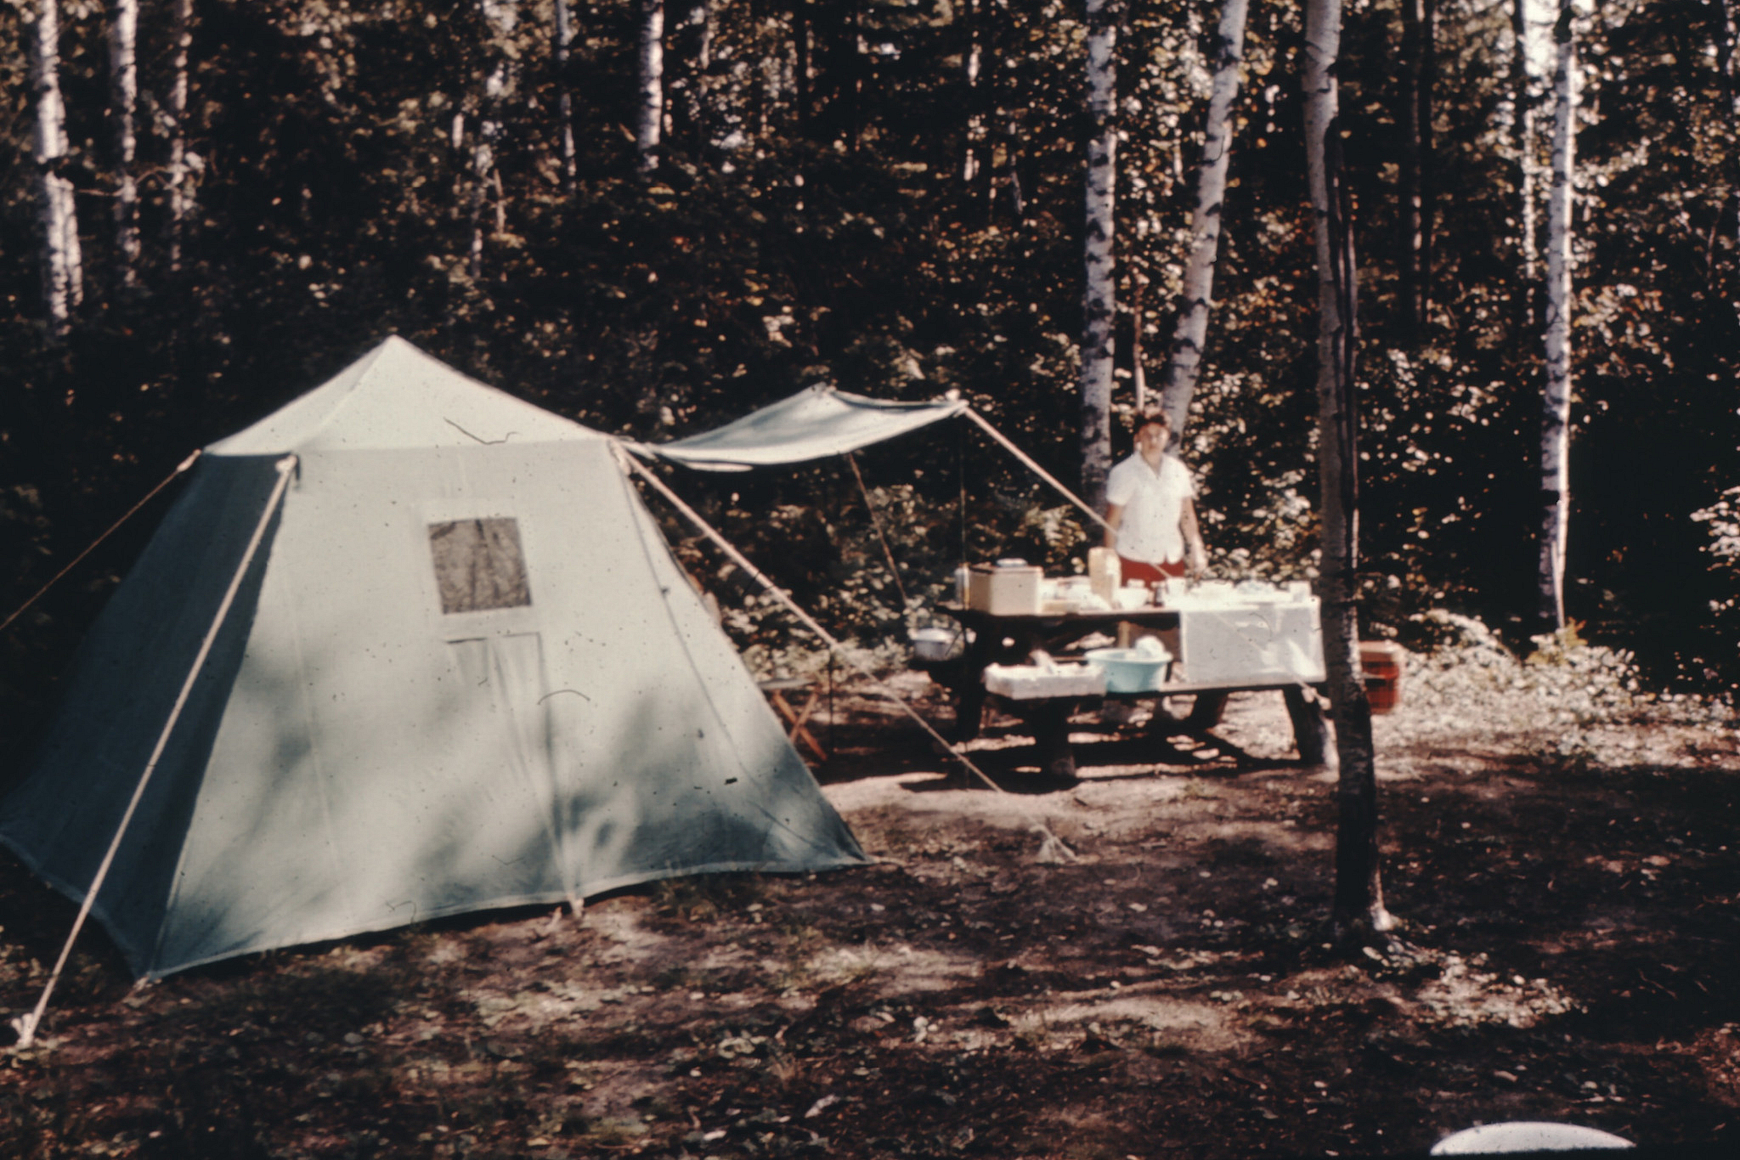 Woman standing next to picnic table at campsite